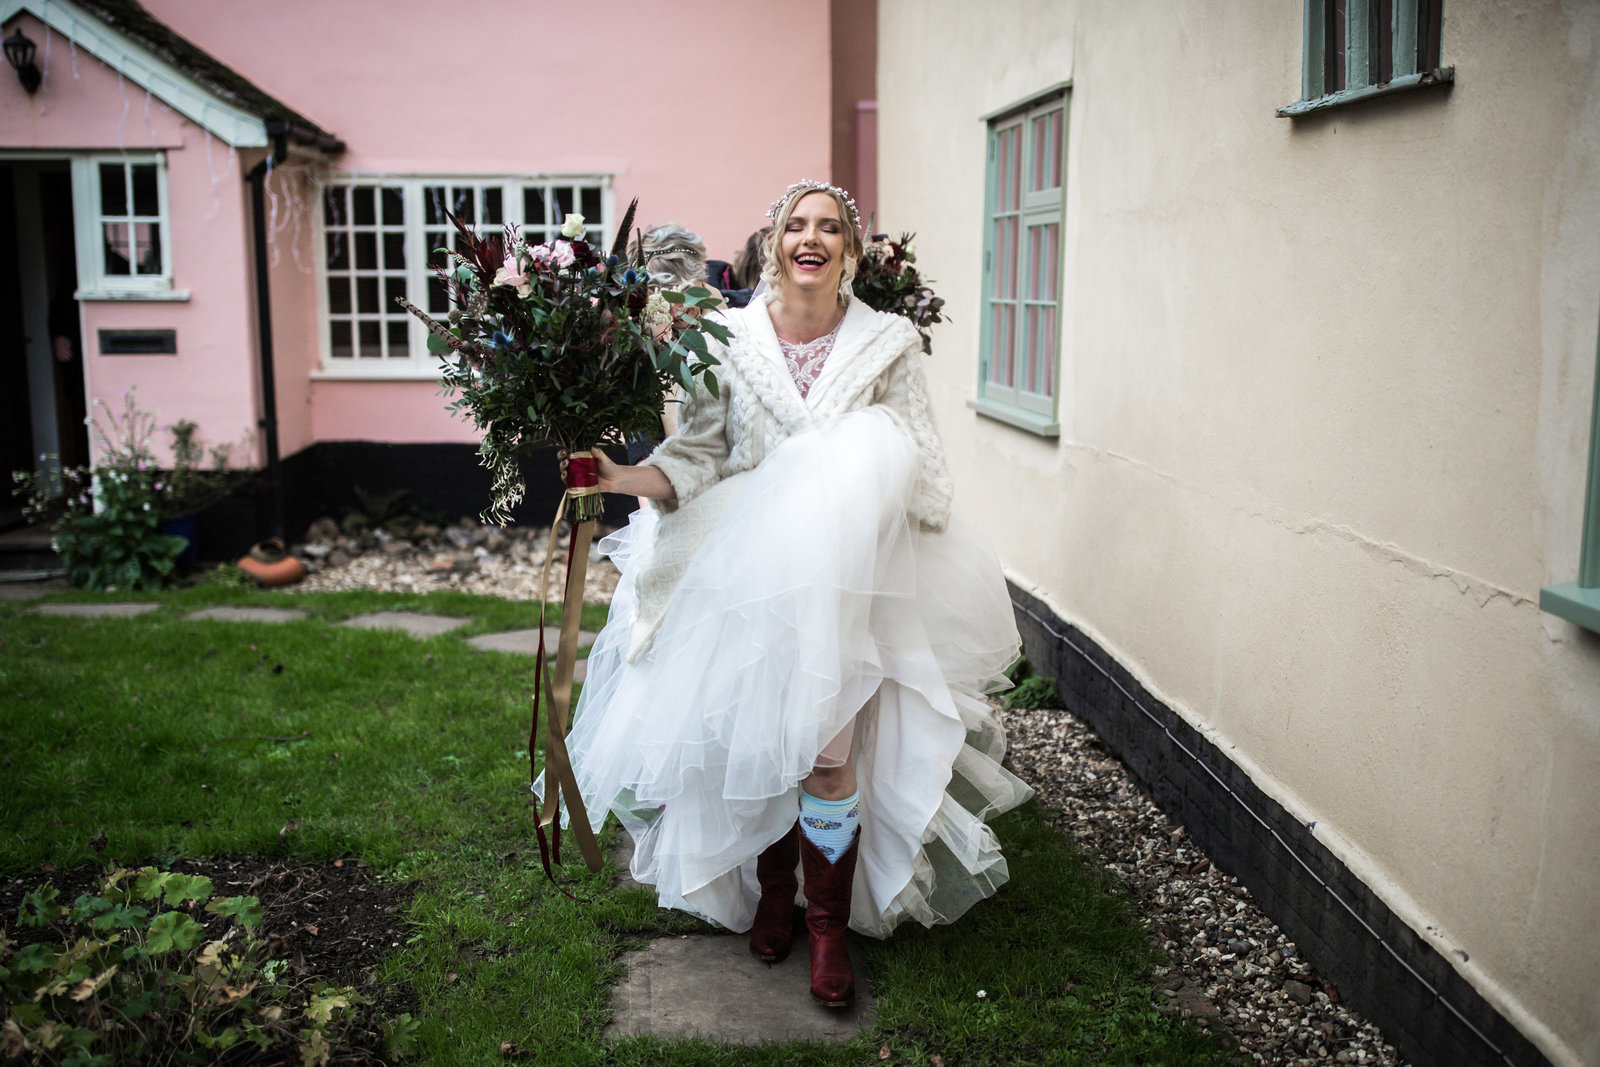 A bride walks down a path of her Norfolk home on the way to her wedding ceremony. She is wearing cowboy boots and laughing.